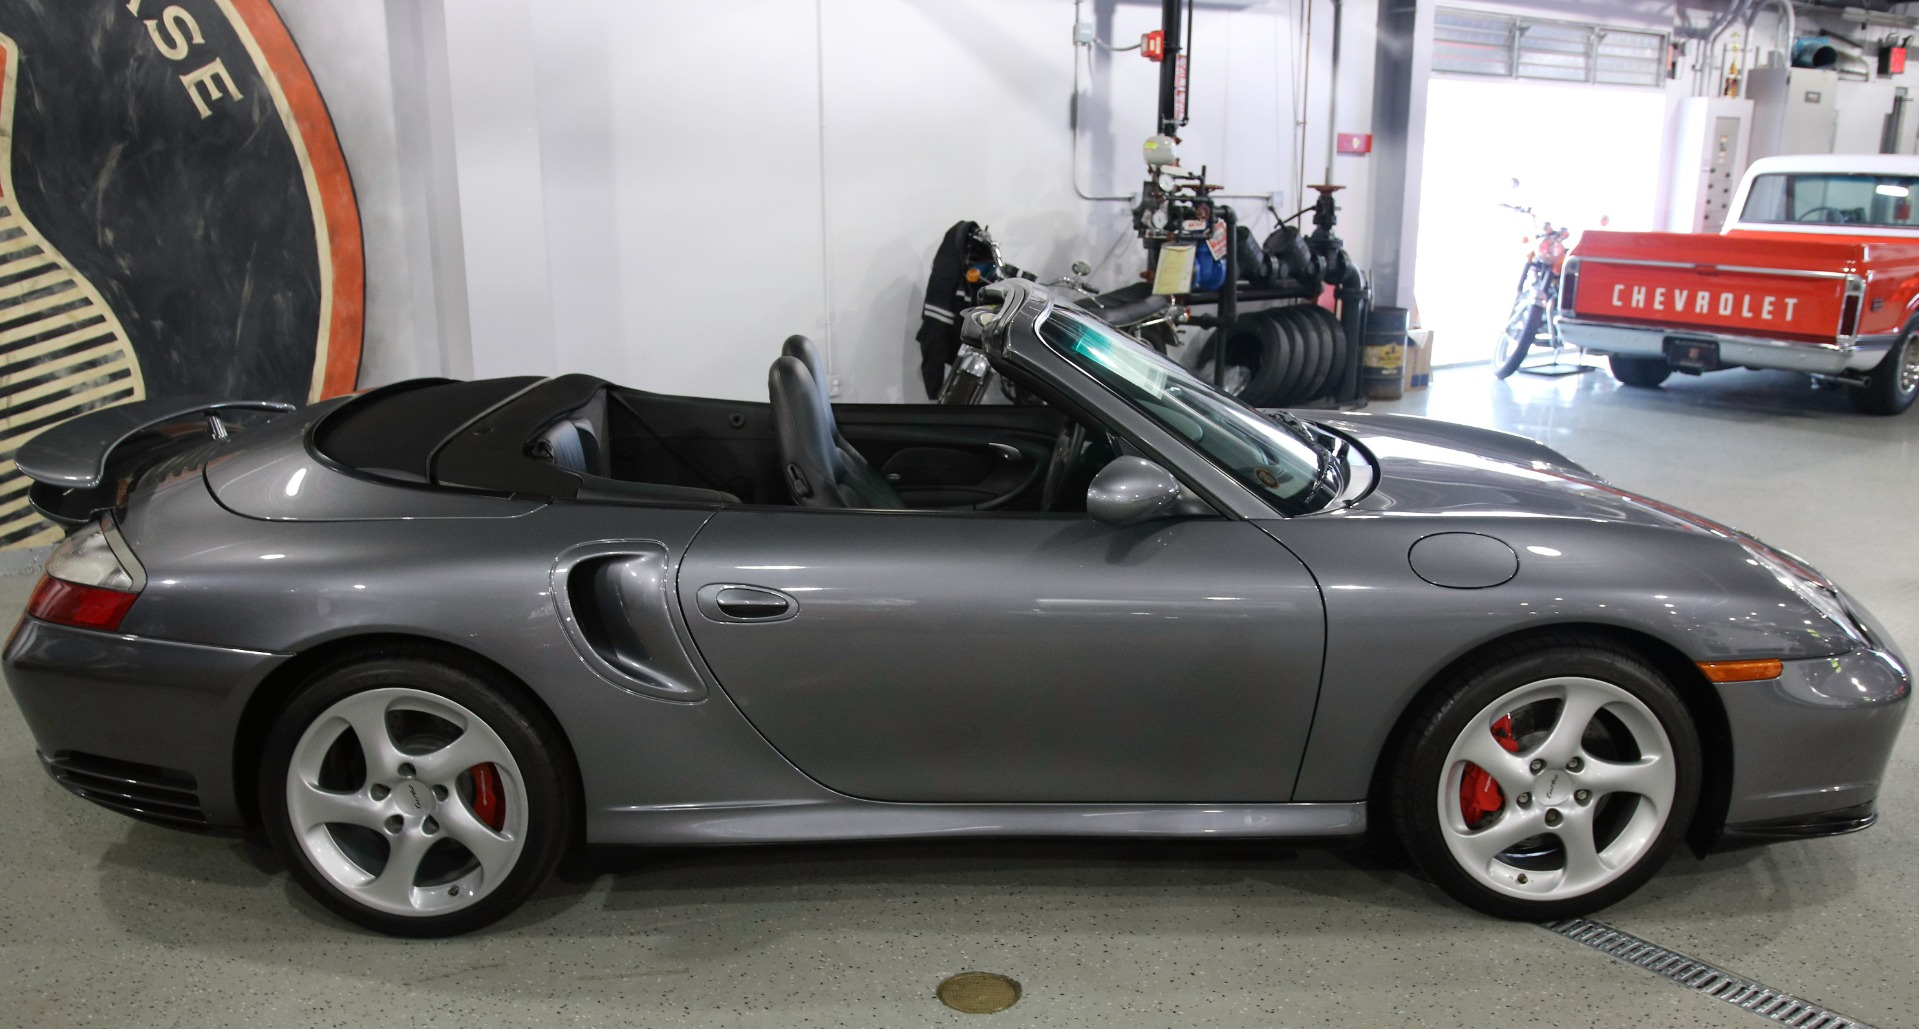 2004 porsche 911 turbo cabriolet 6-speed stock # 1218x for sale near